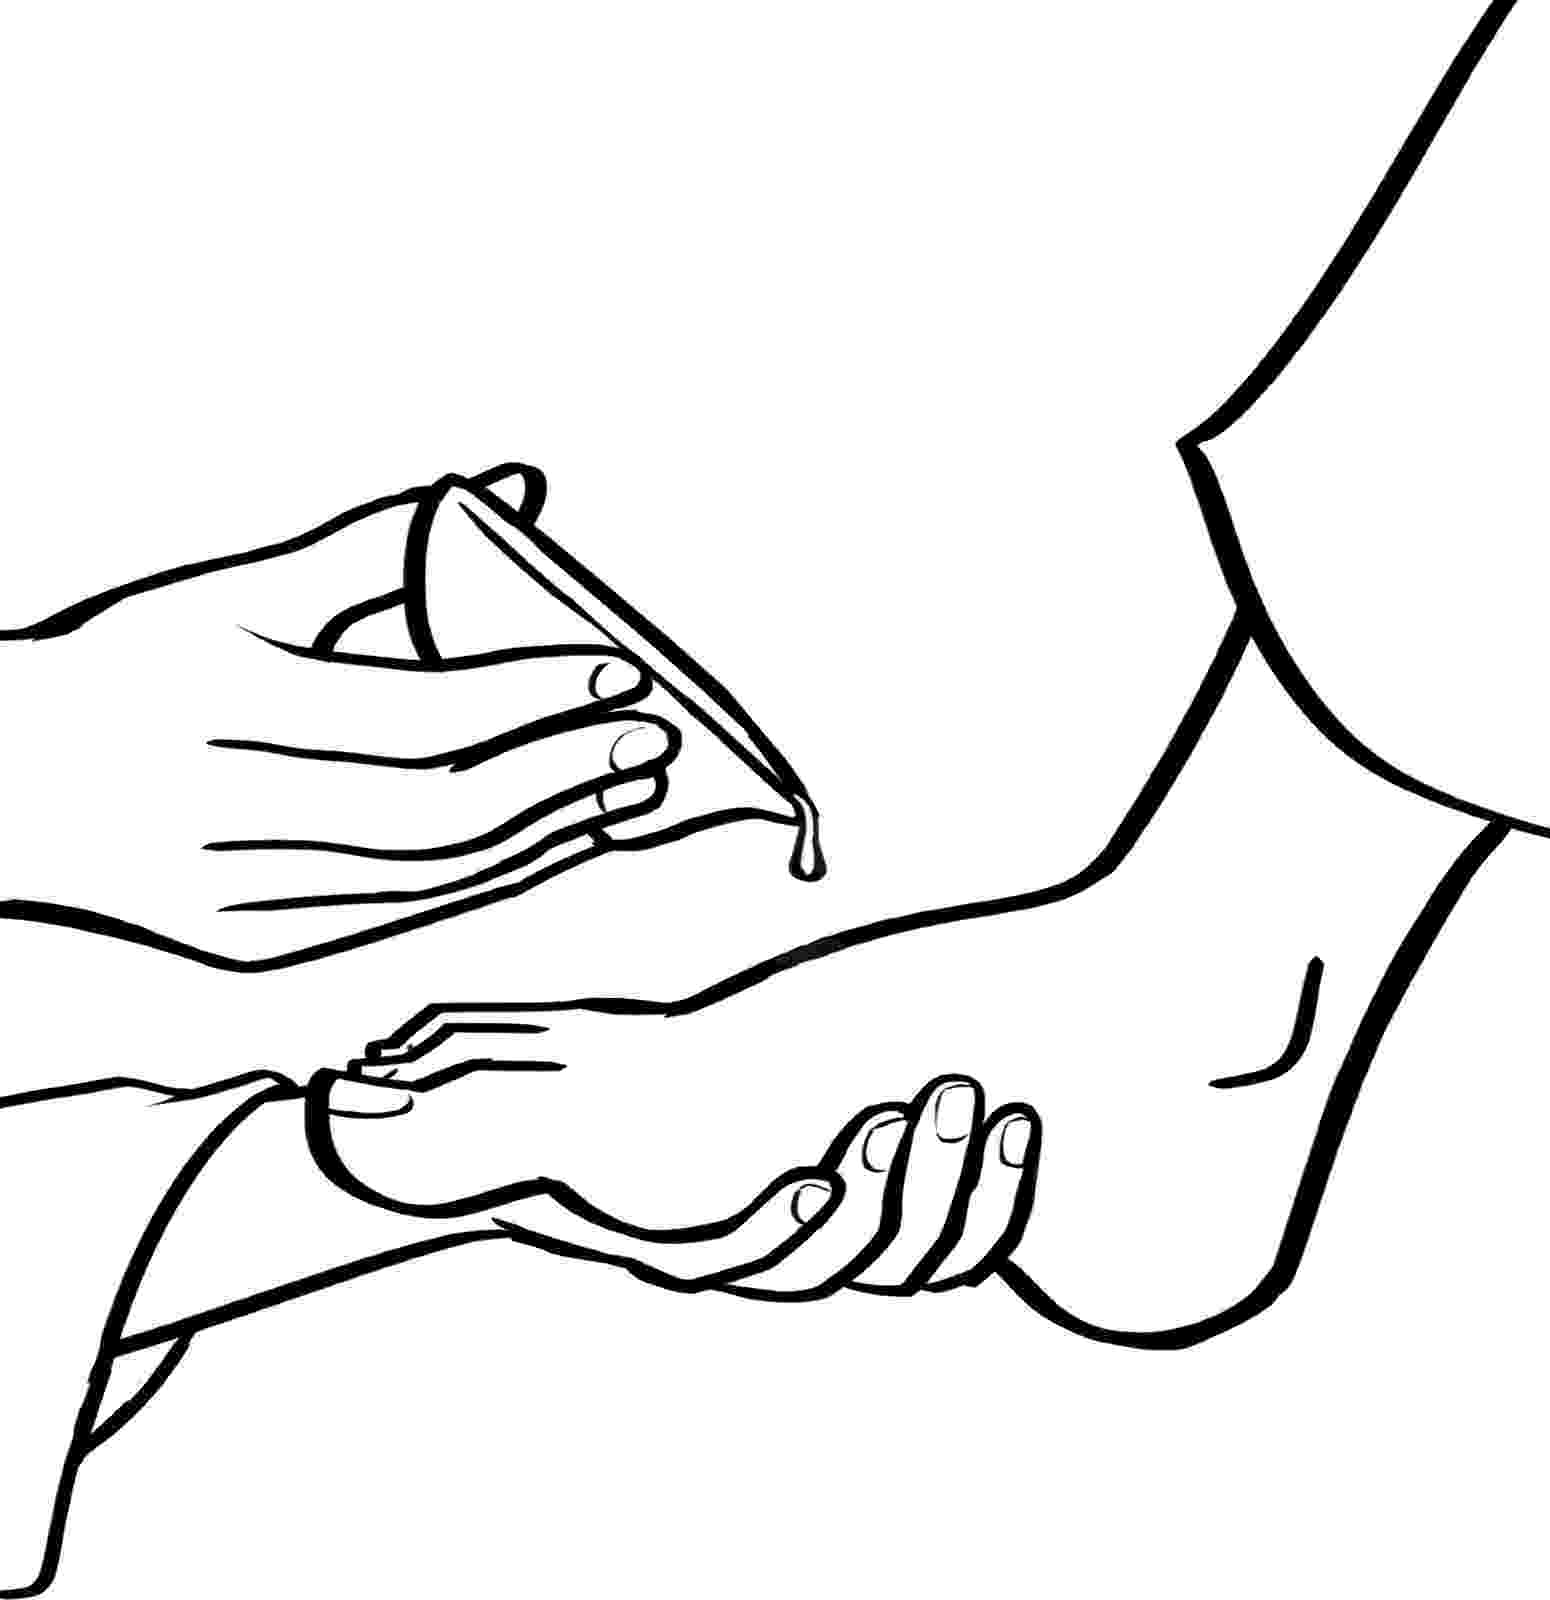 feet coloring sheet feet coloring pages sheet coloring feet